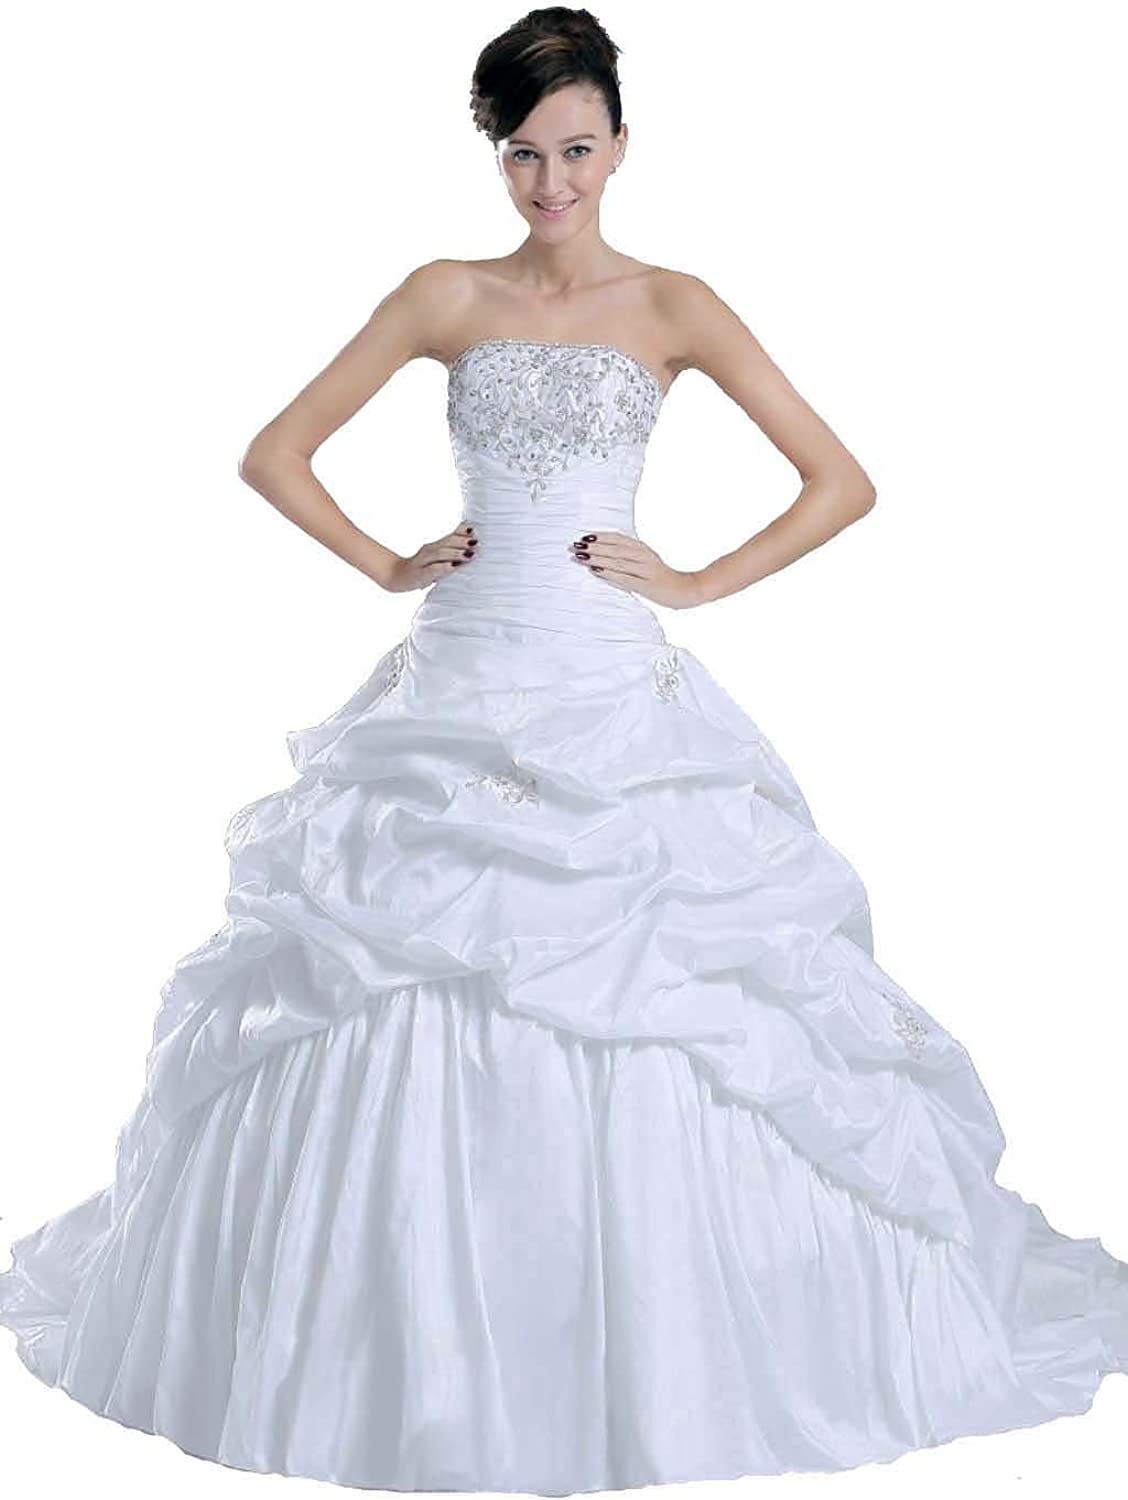 Faironly New Ivory Bride Wedding Dress , Size XL